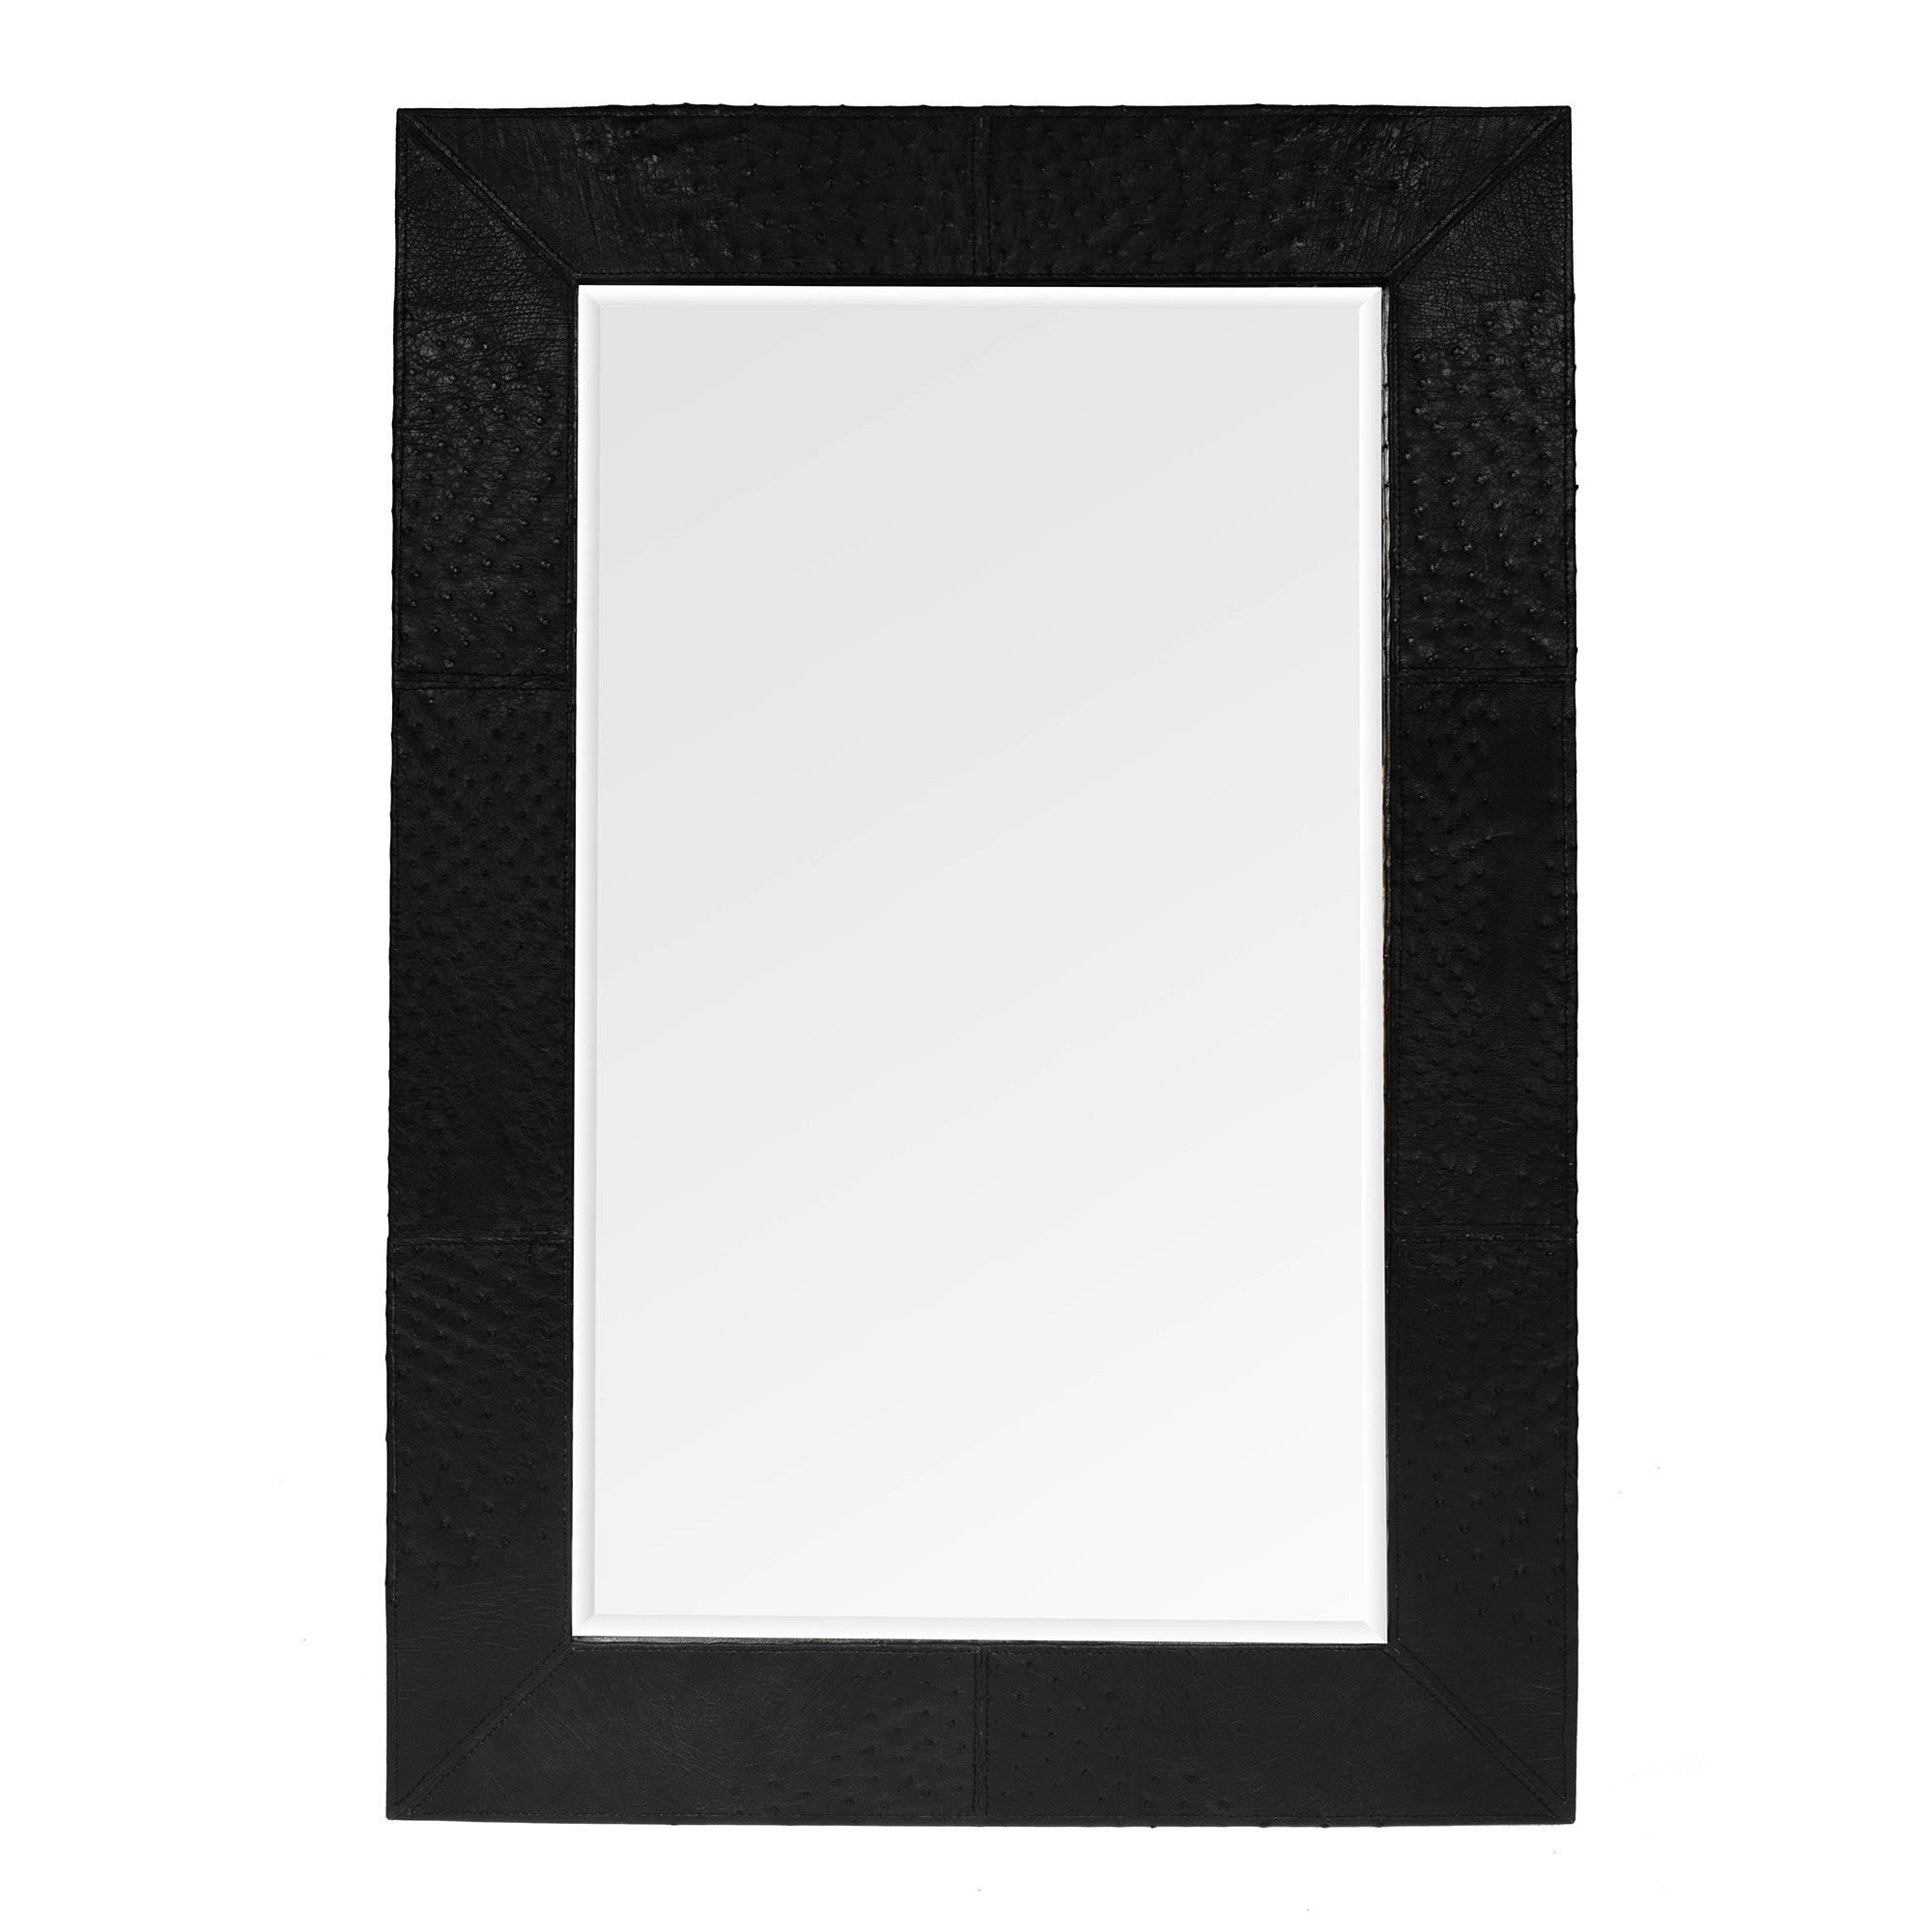 Ostrich Leather Mirror - Rectangle - Black